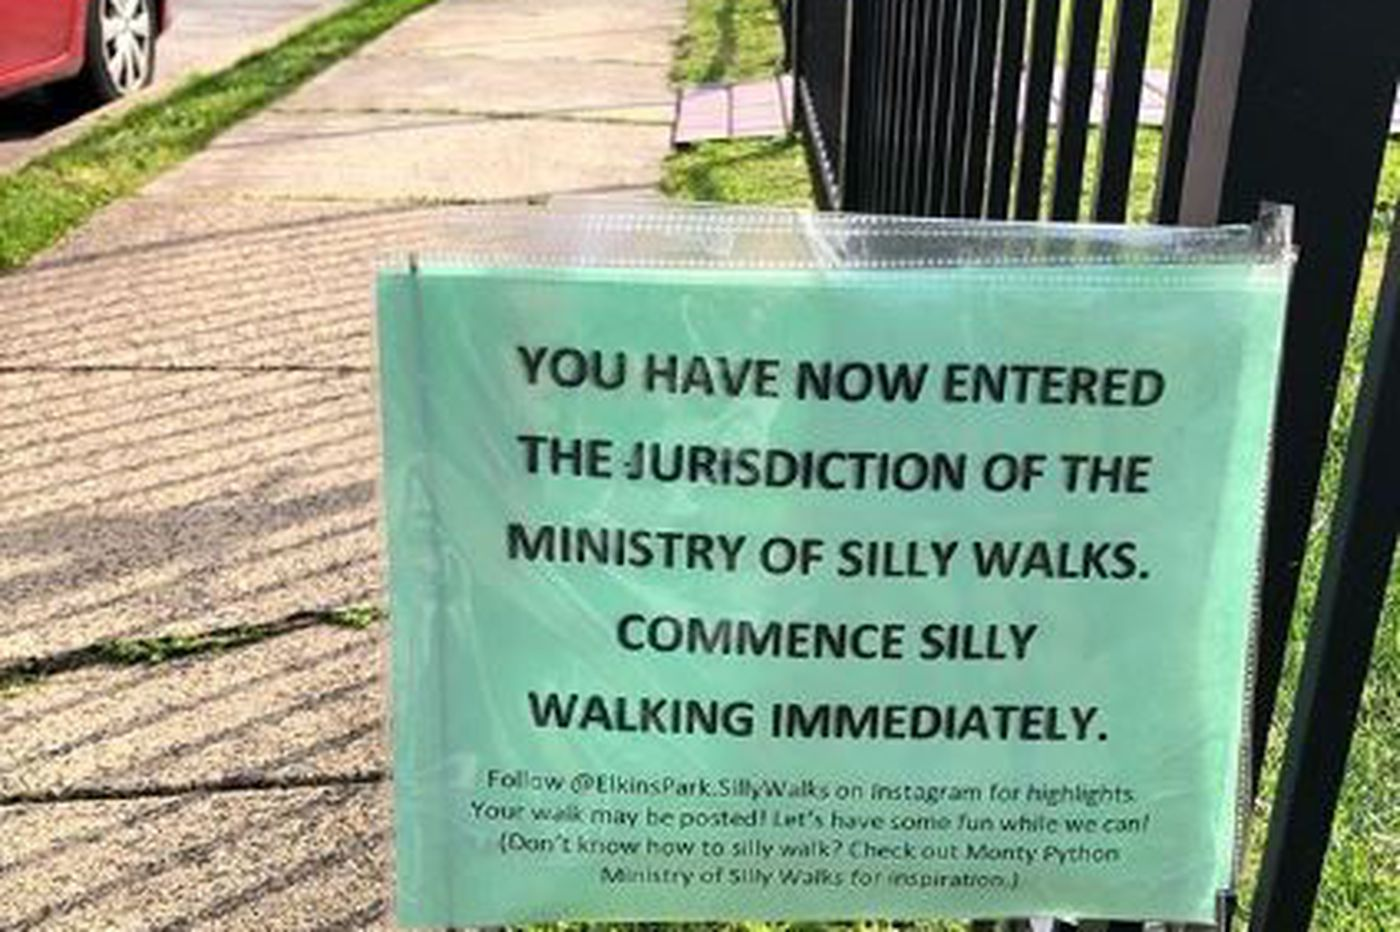 Elkins Park Monty Python Fan Gives Jurisdiction Over Her Sidewalk To Ministry of Silly Walks